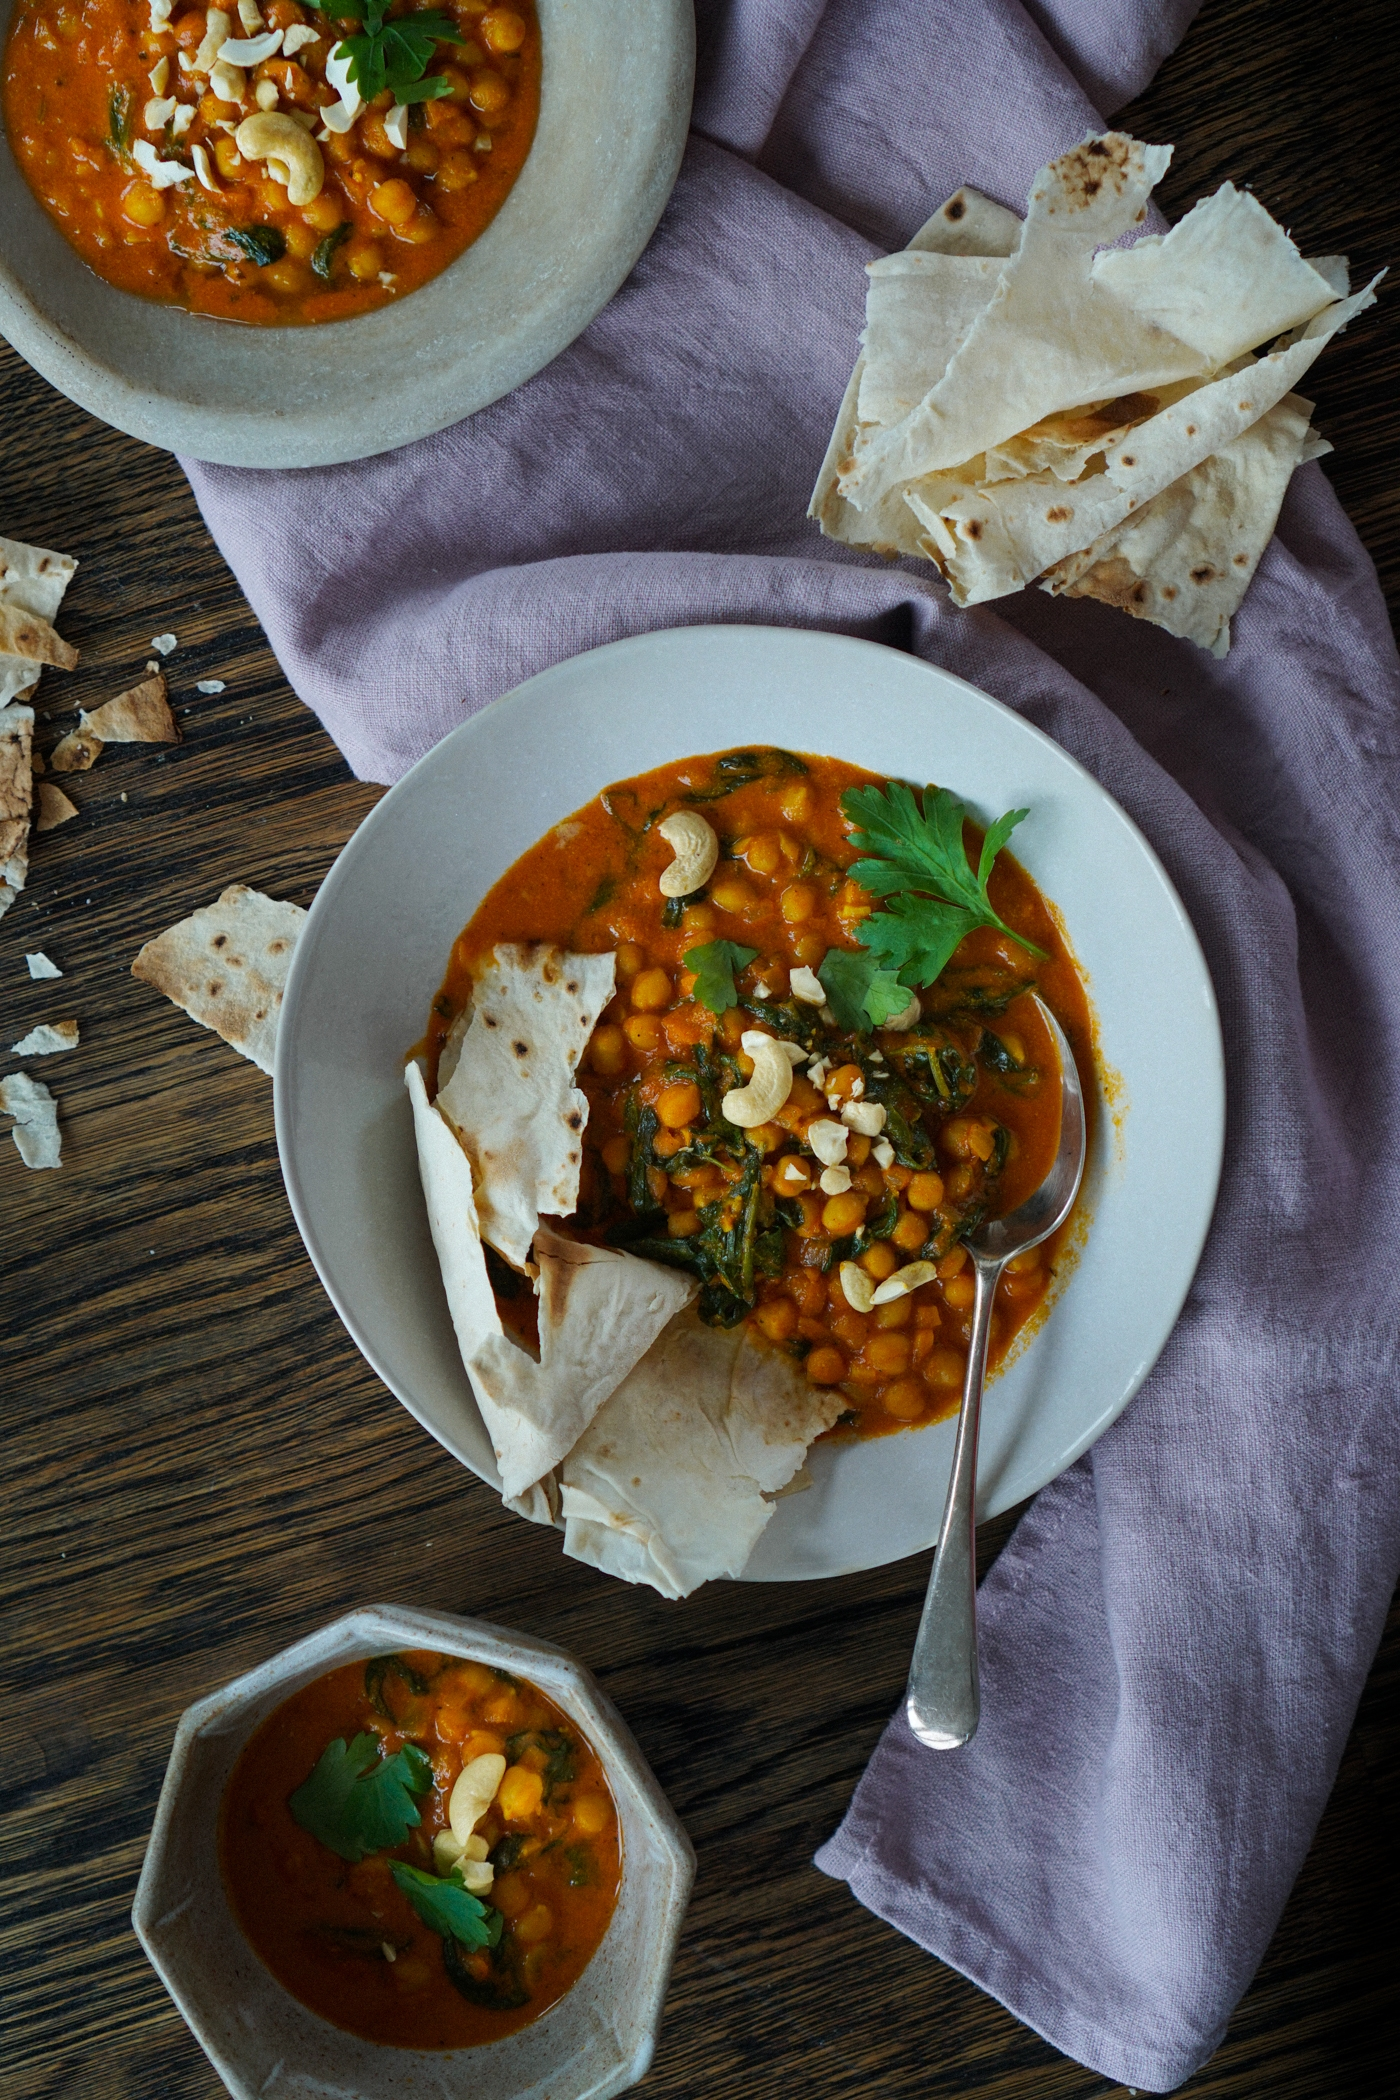 curried_chickpea_and_spinach_stew-5.jpg